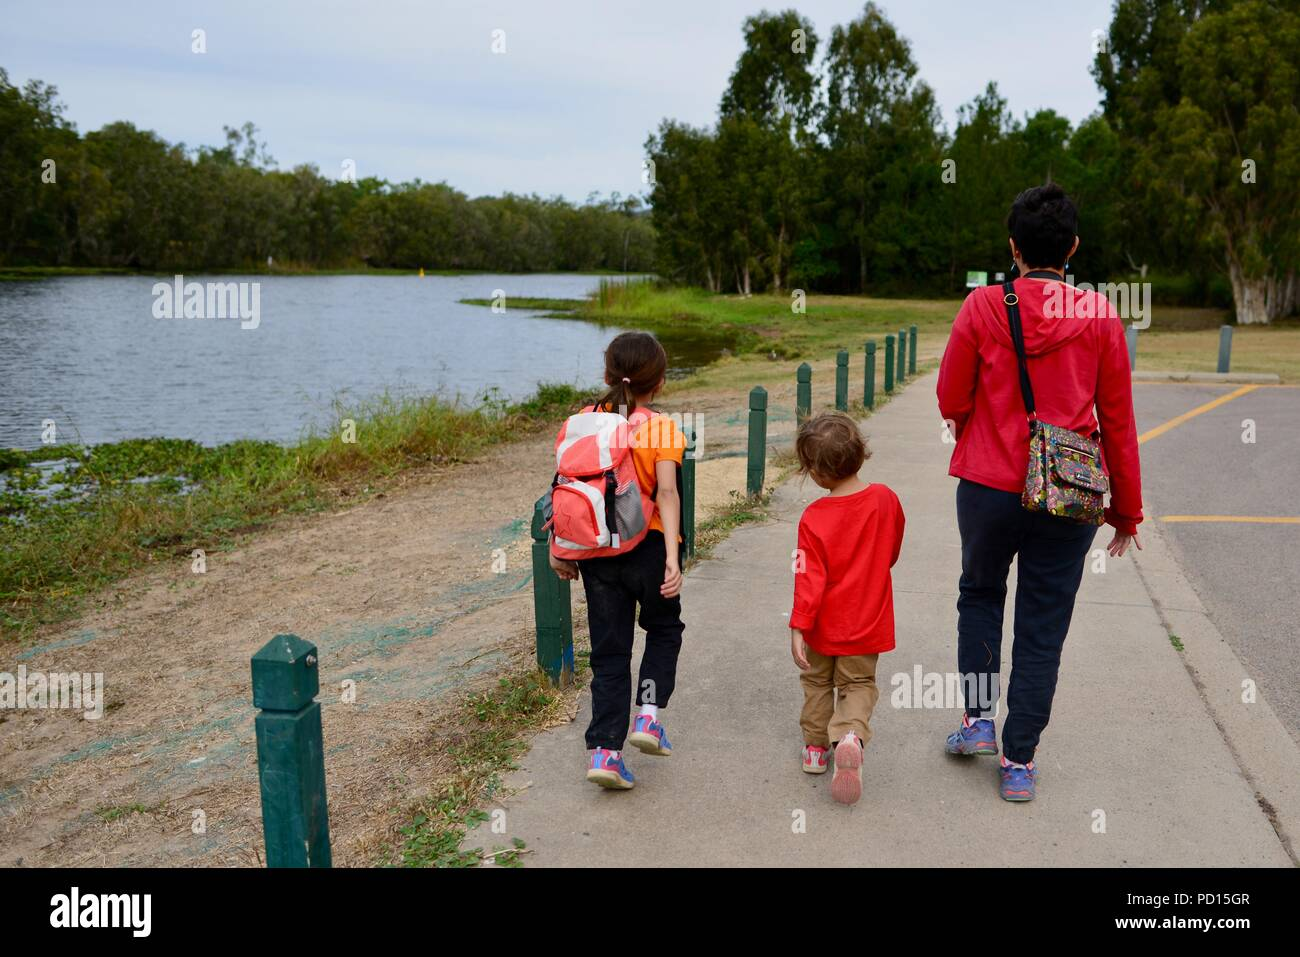 A woman and two children walk beside a river, Booroona walking trail on the Ross River, Rasmussen QLD 4815, Australia Stock Photo